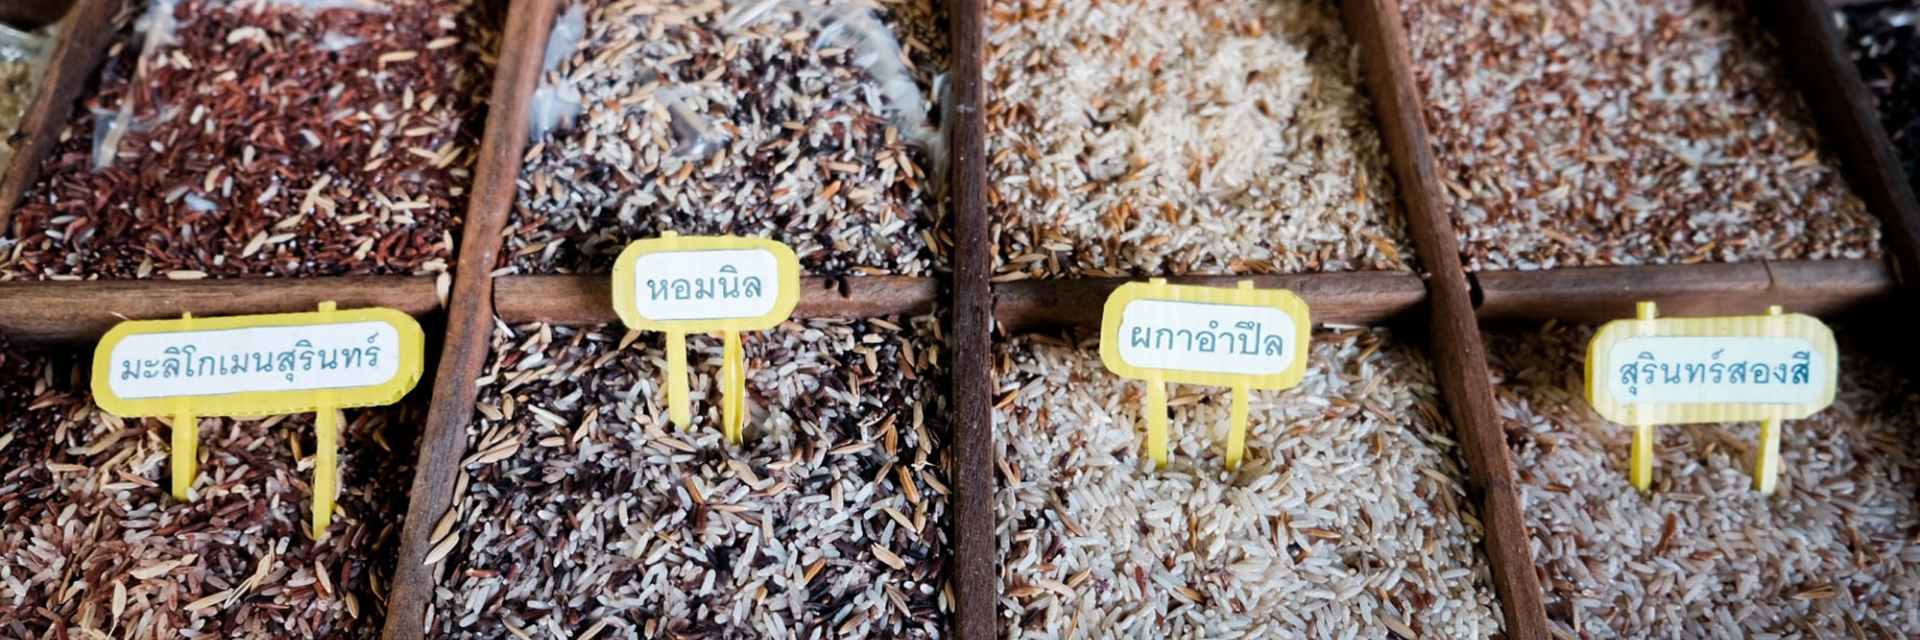 2 places to shop + dine in Surin - experience the local charm in the Lower Northeast region